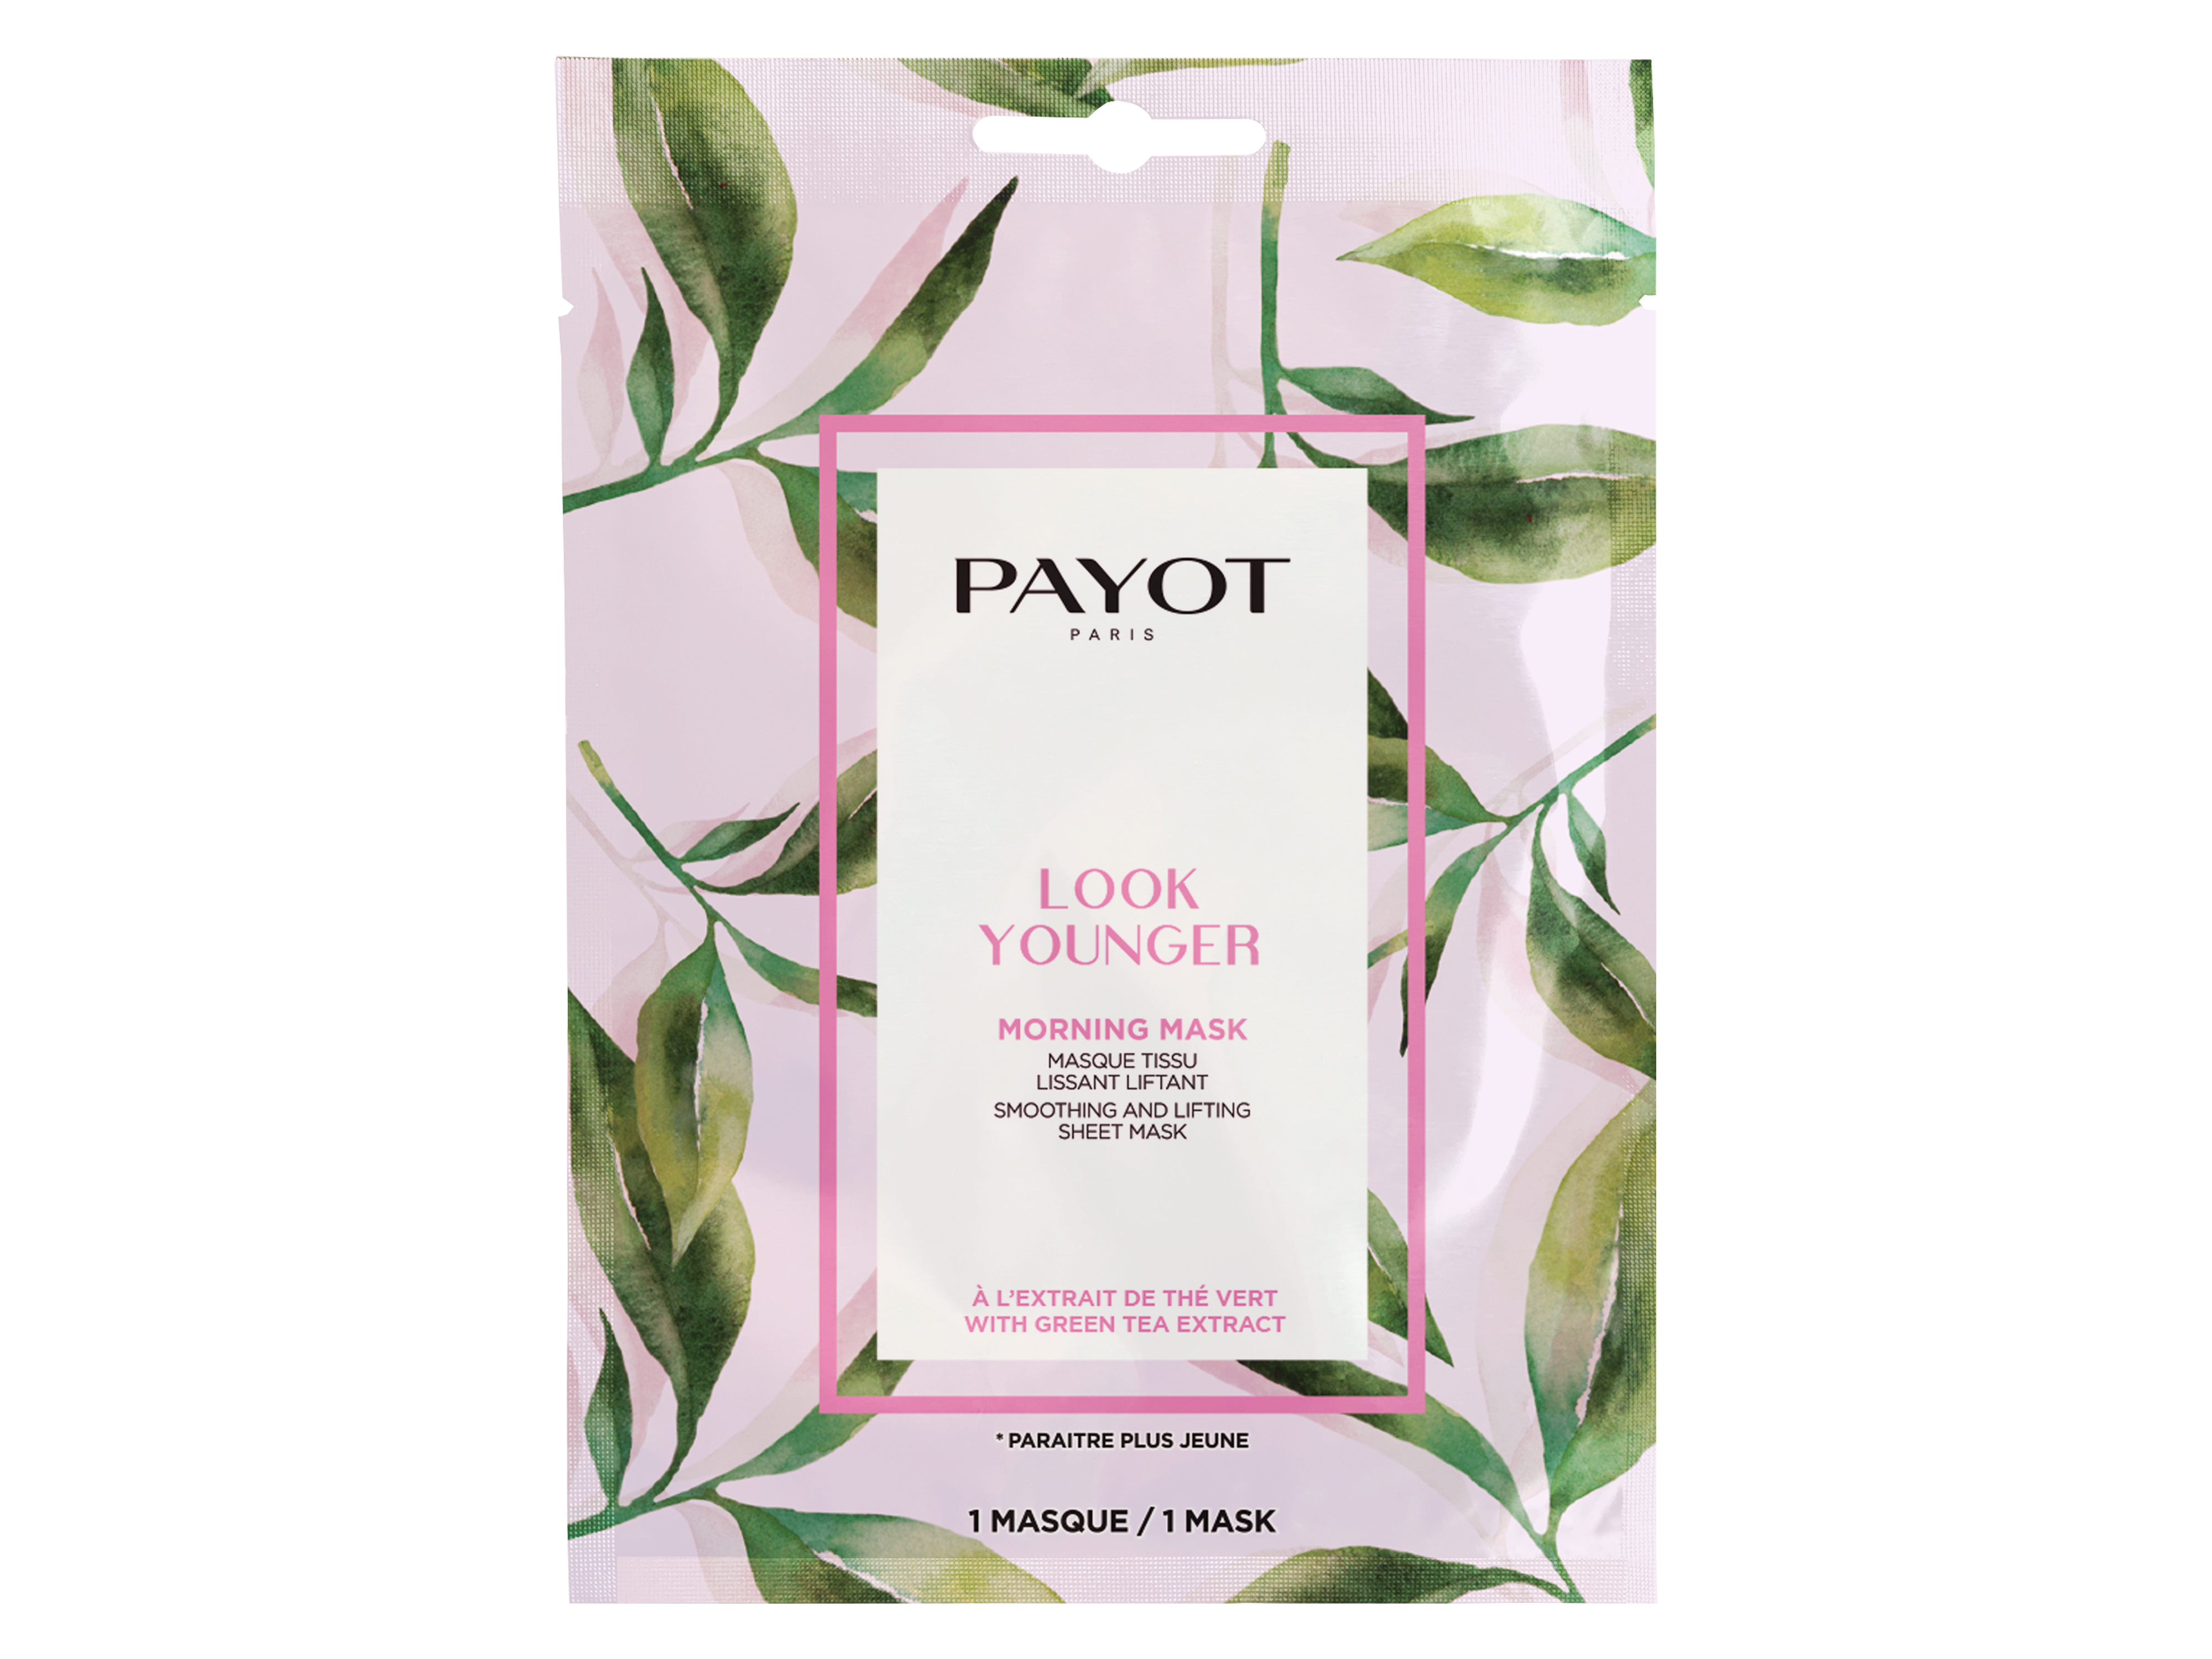 Payot Morning Mask Look Younger, 1 stk., 19 ml